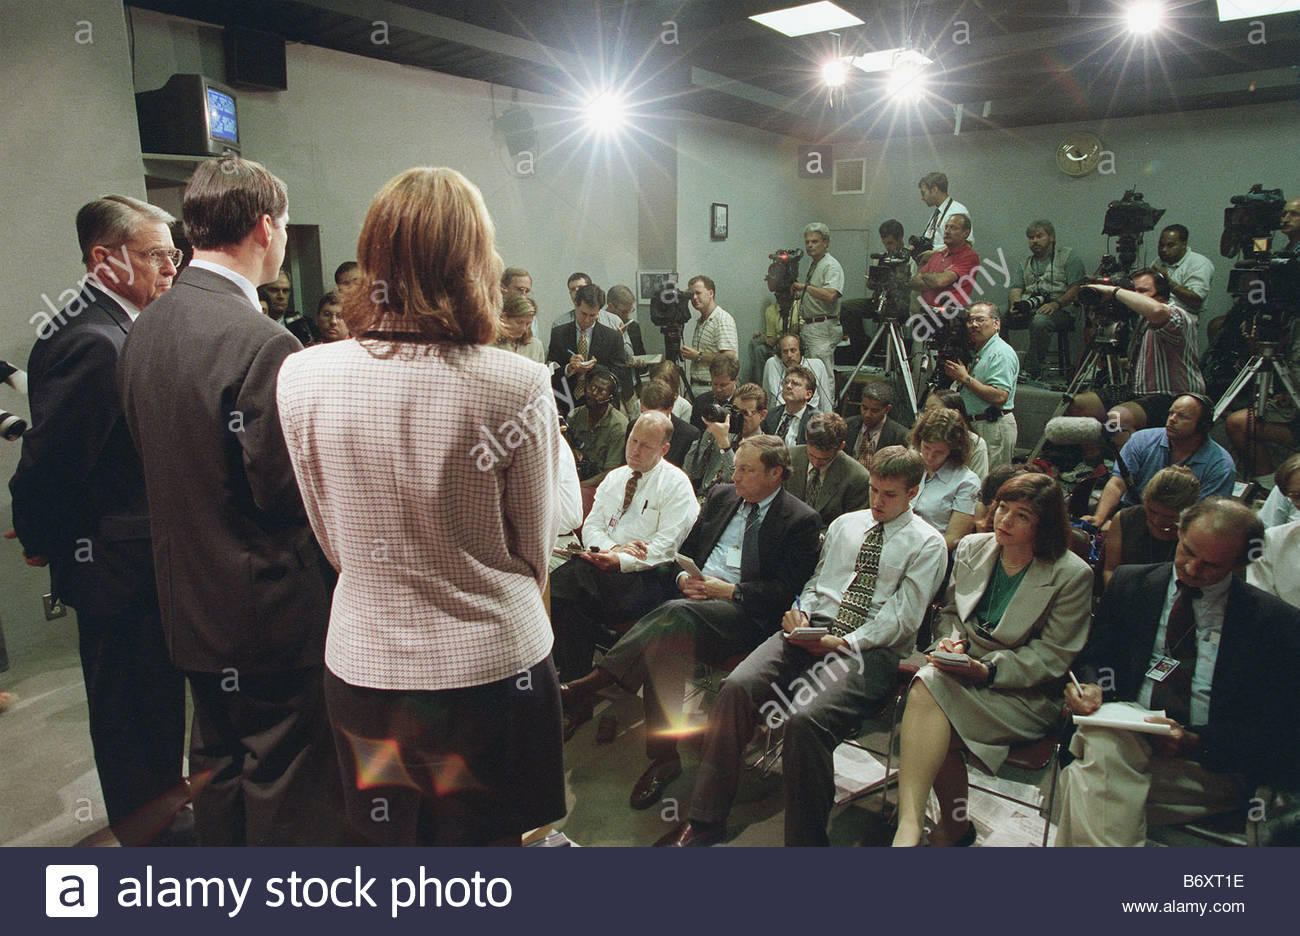 9 16 98 STARR REPORT CLINTON SCANDAL House Rules Committee Chairman Gerald  Solomon R N Y Chris Cox R Calif And Anne Northup R Ky During A News  Conference On ...